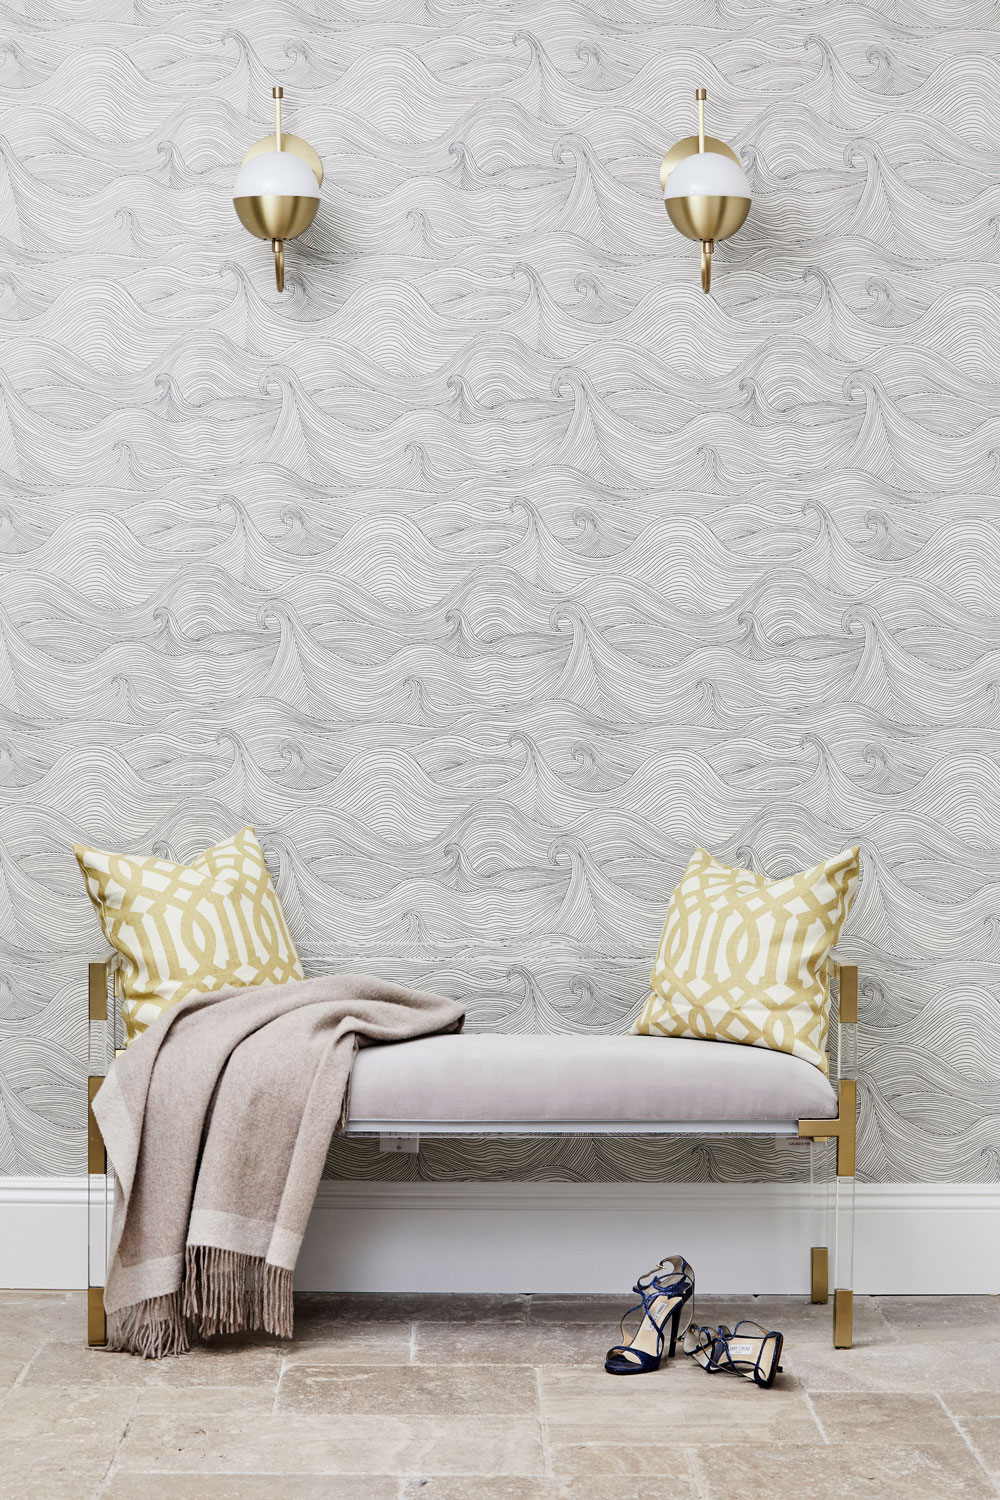 Every entertaining space needs a quiet spot to catch-up with friends. Or enjoy simply beautiful wallpaper from Abigail Edwards Seascape collection.